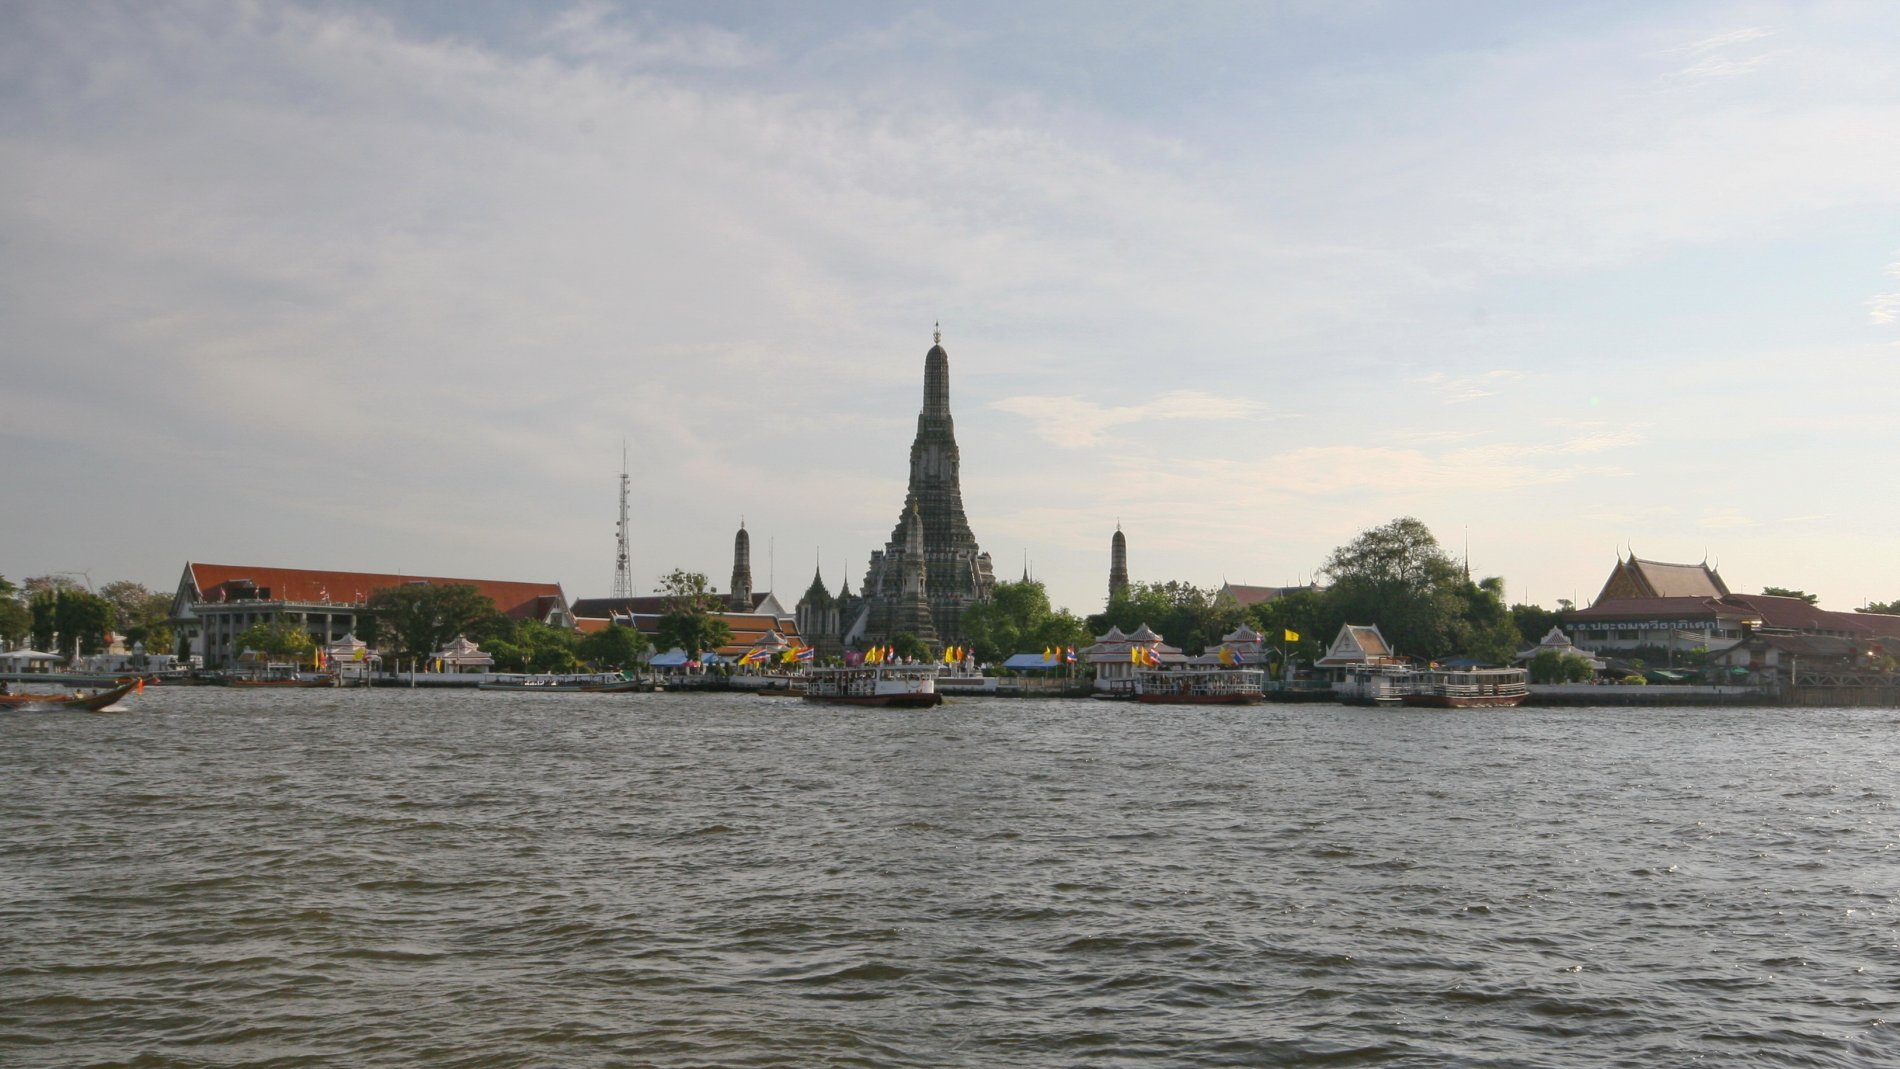 Wat Arun-010.JPG-commment